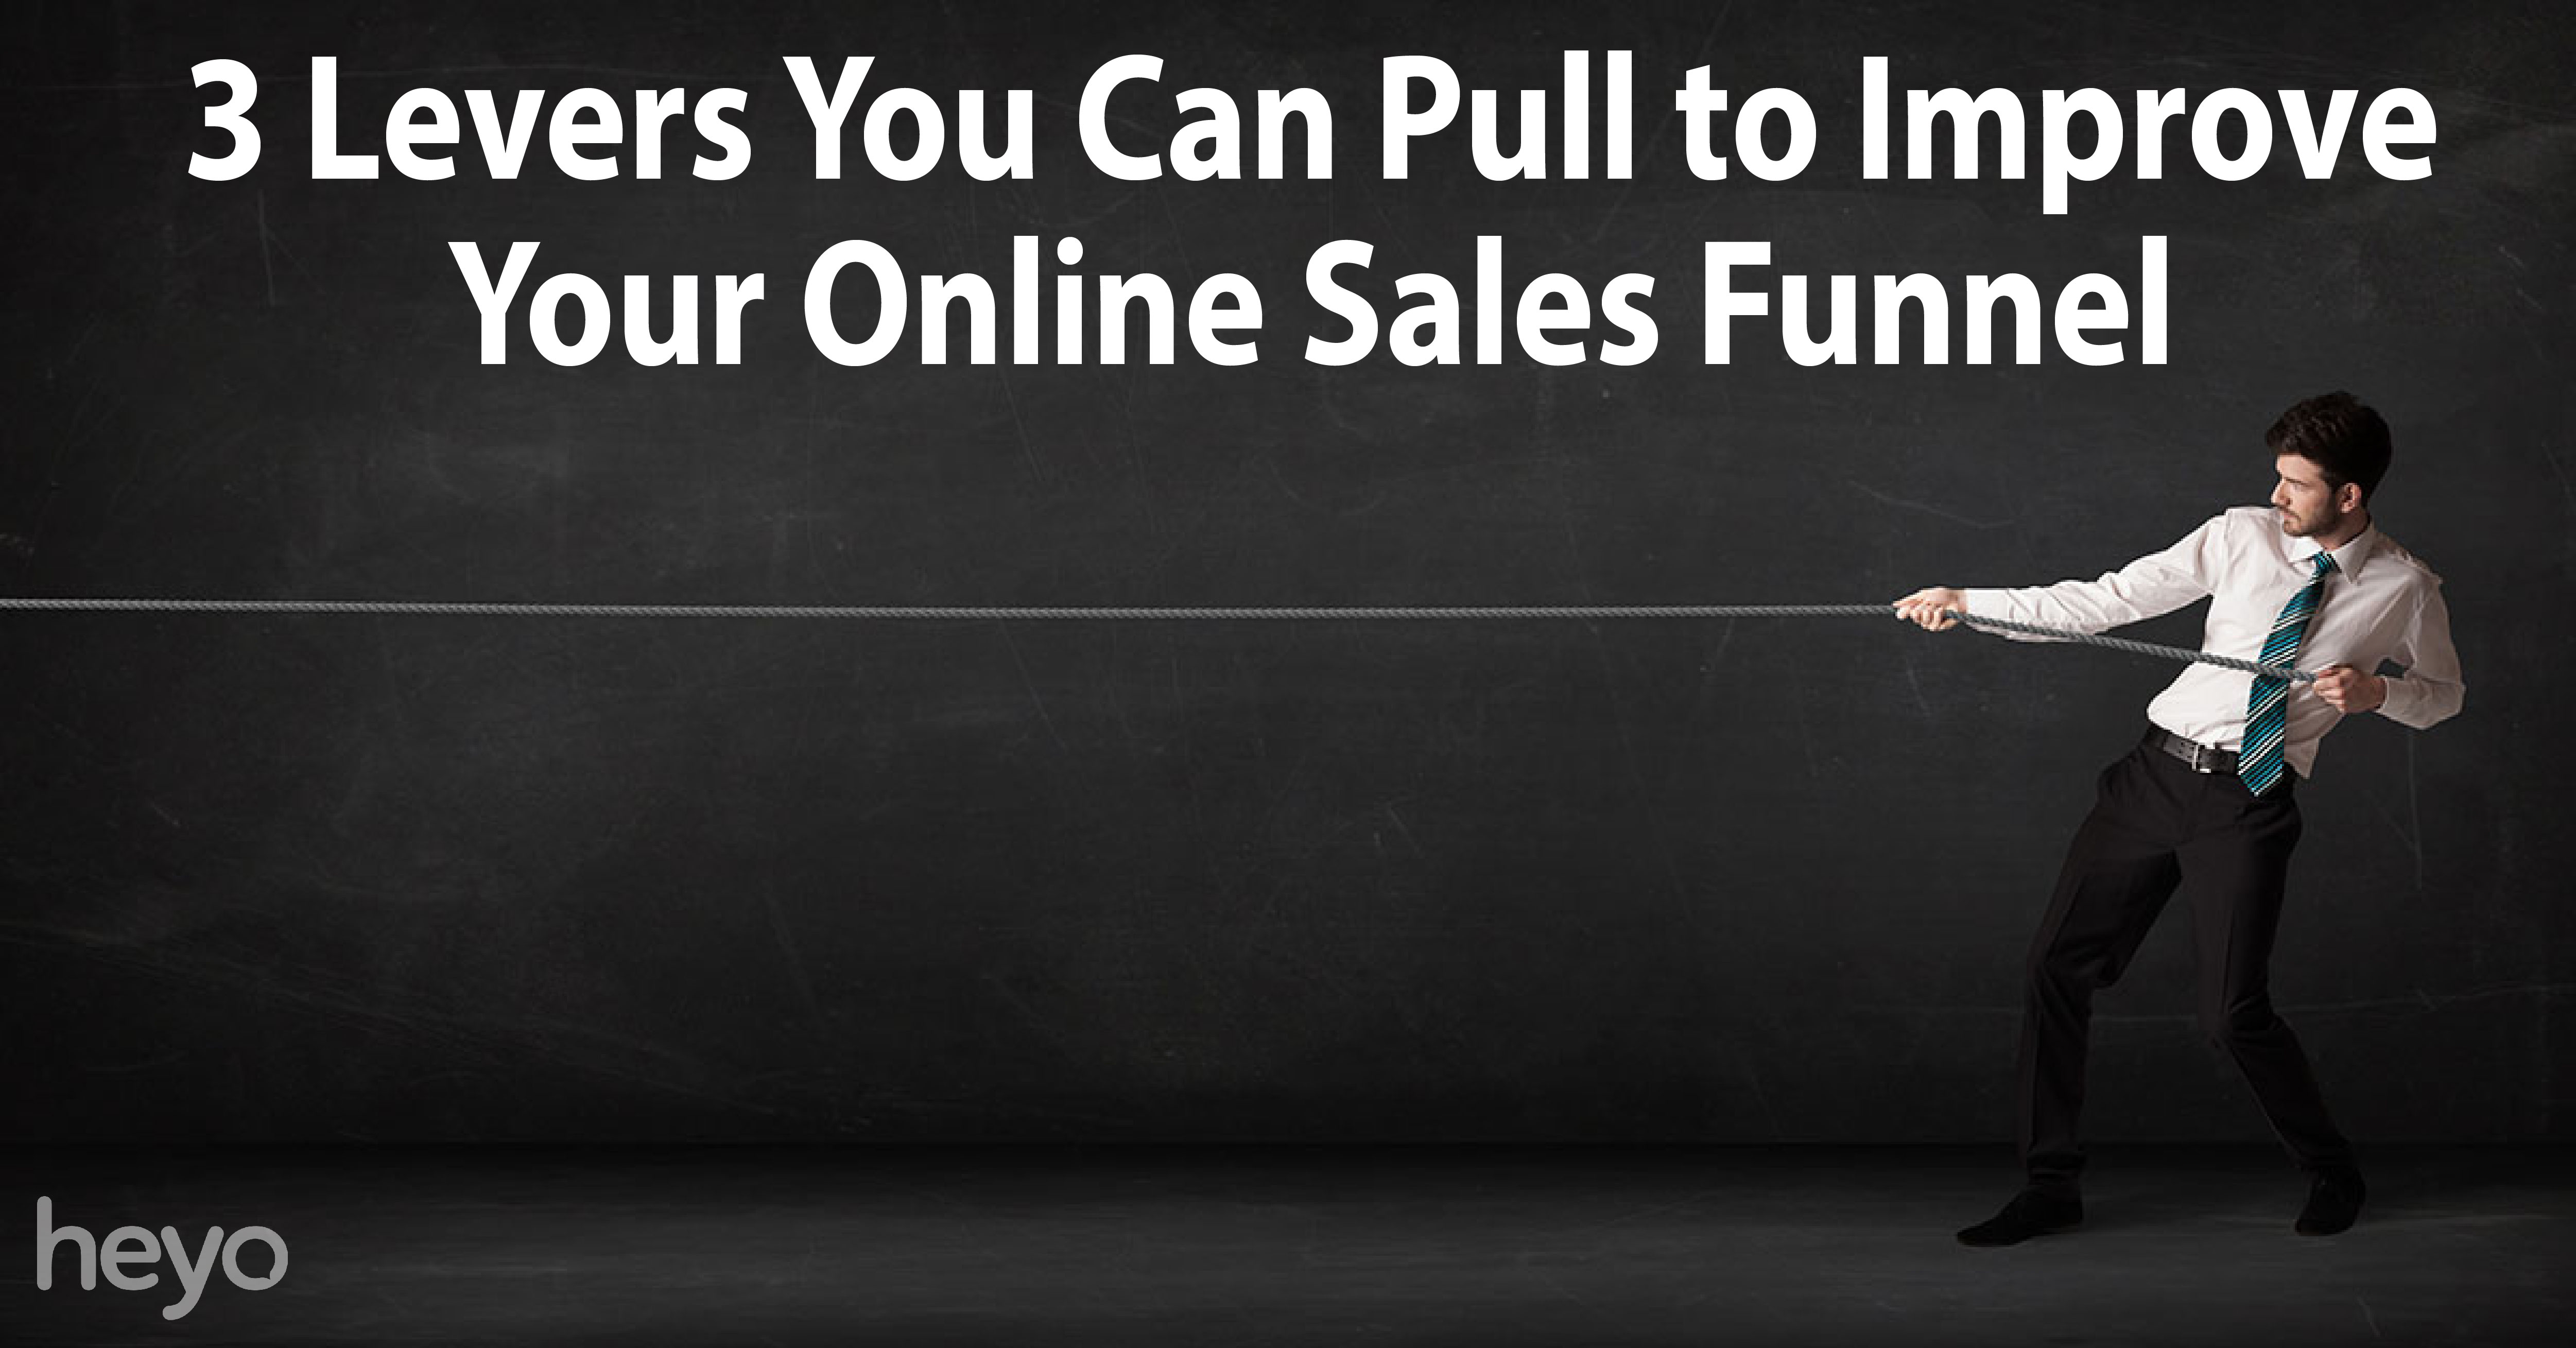 3 levers you can pull to improve your online sales funnel heyo blog